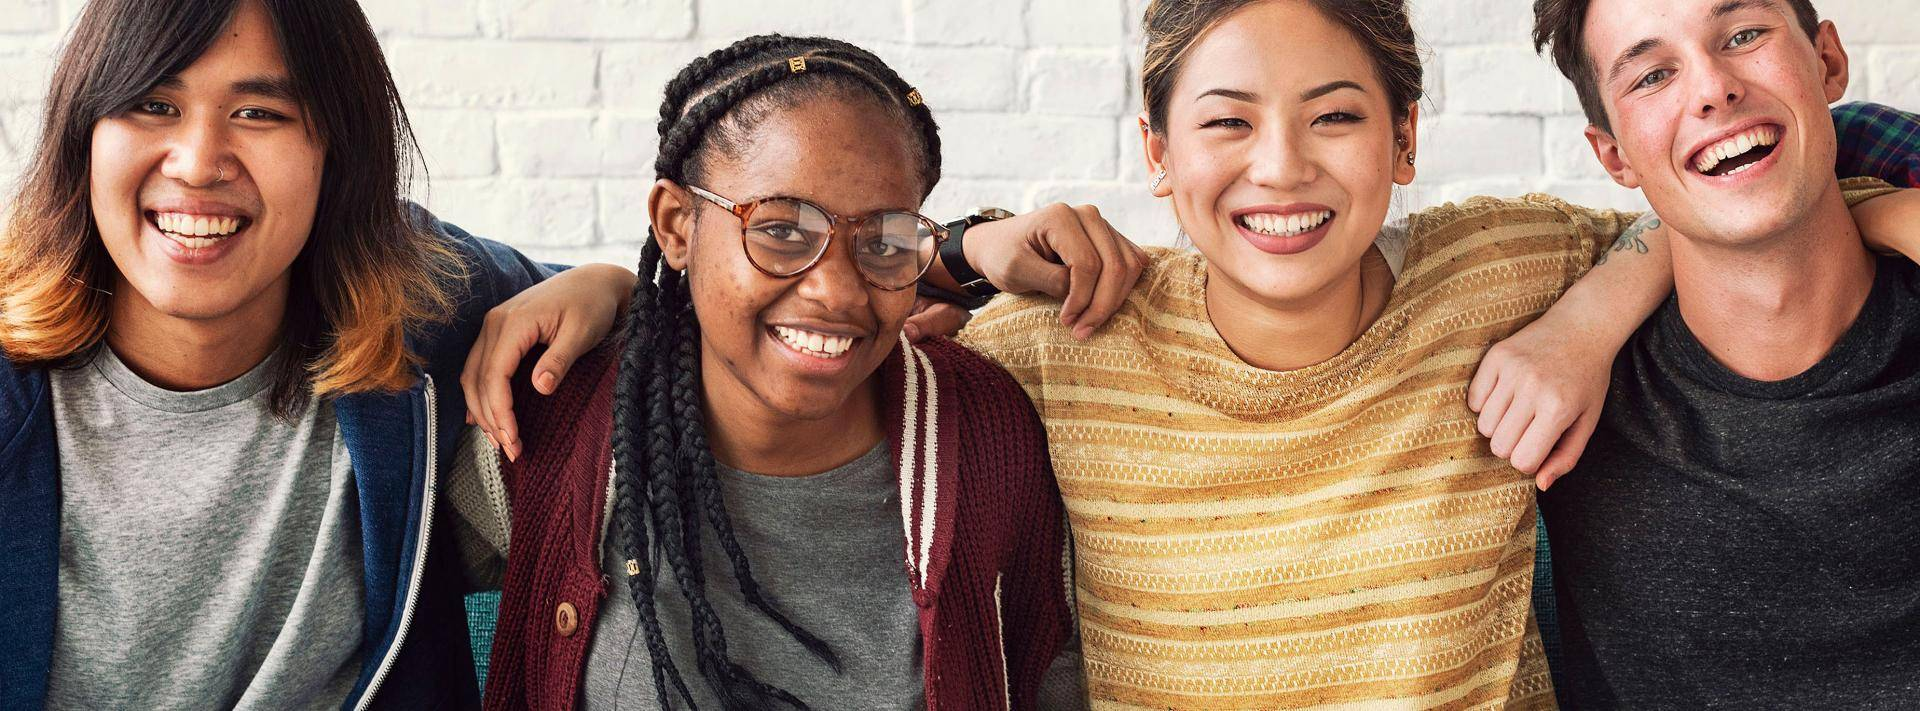 Discover 3 ways to make Centennials love your brand and products